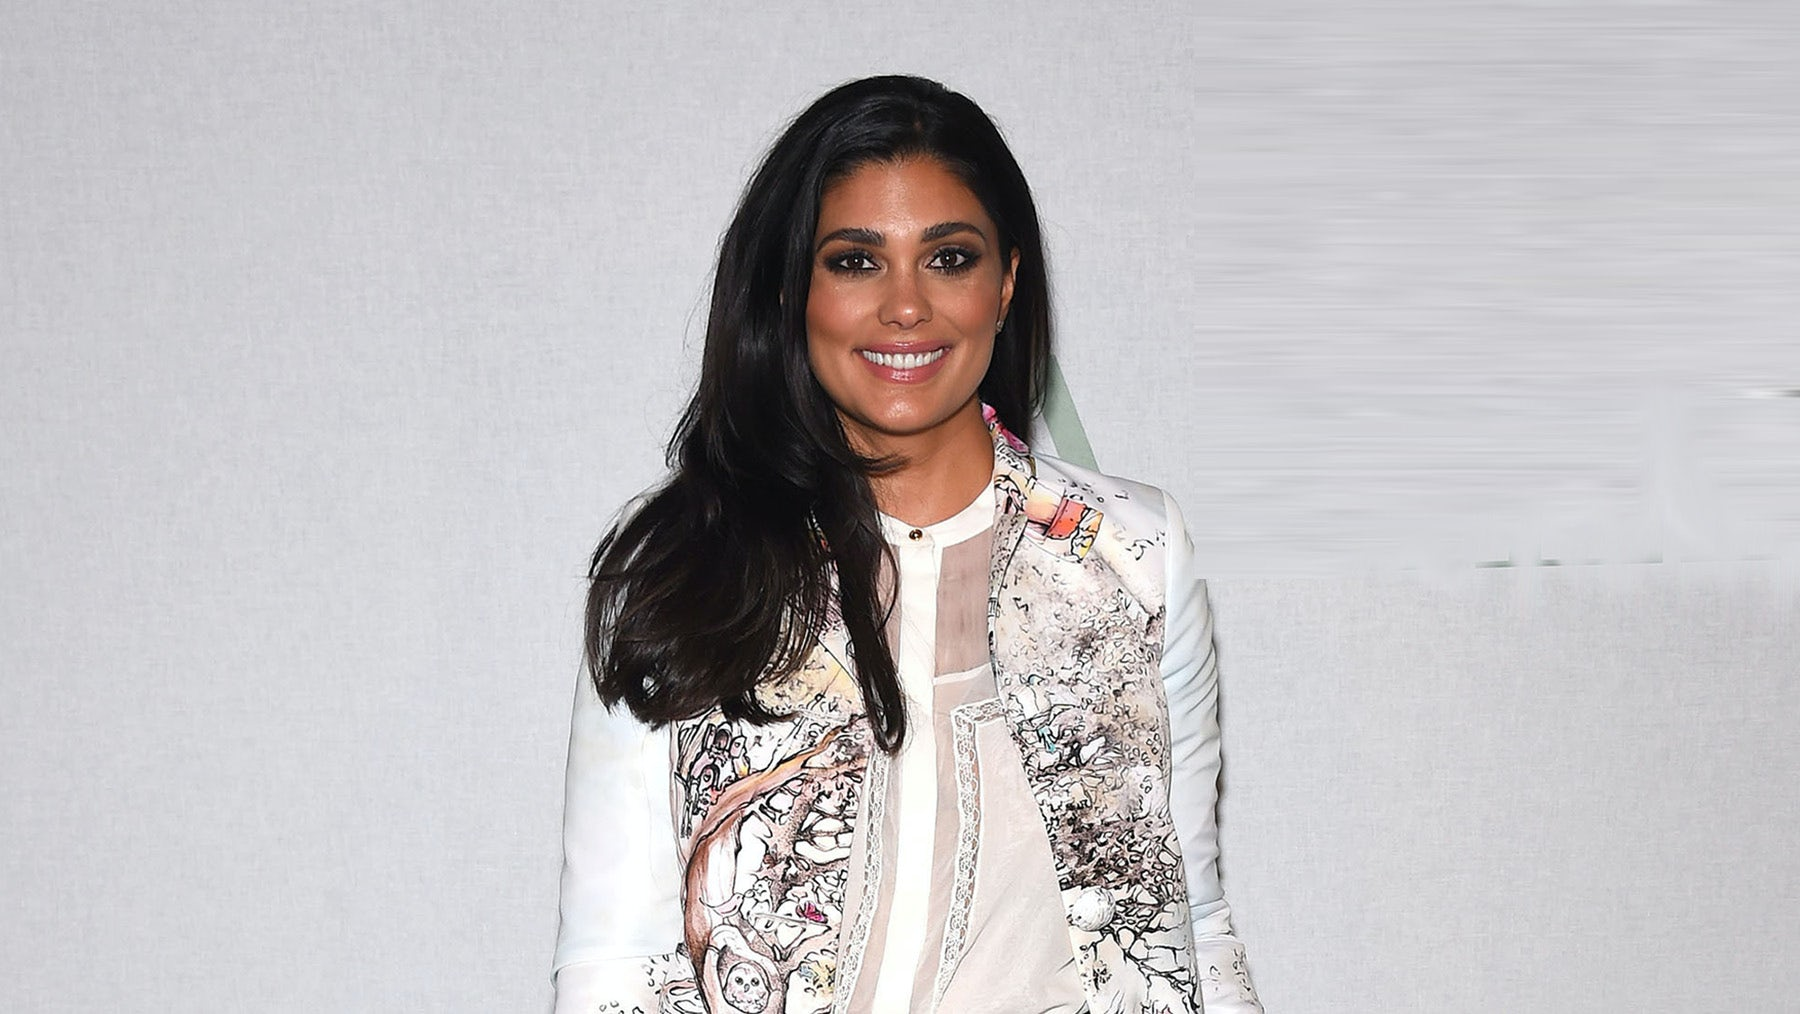 Rachel Roy | Source: Shutterstock